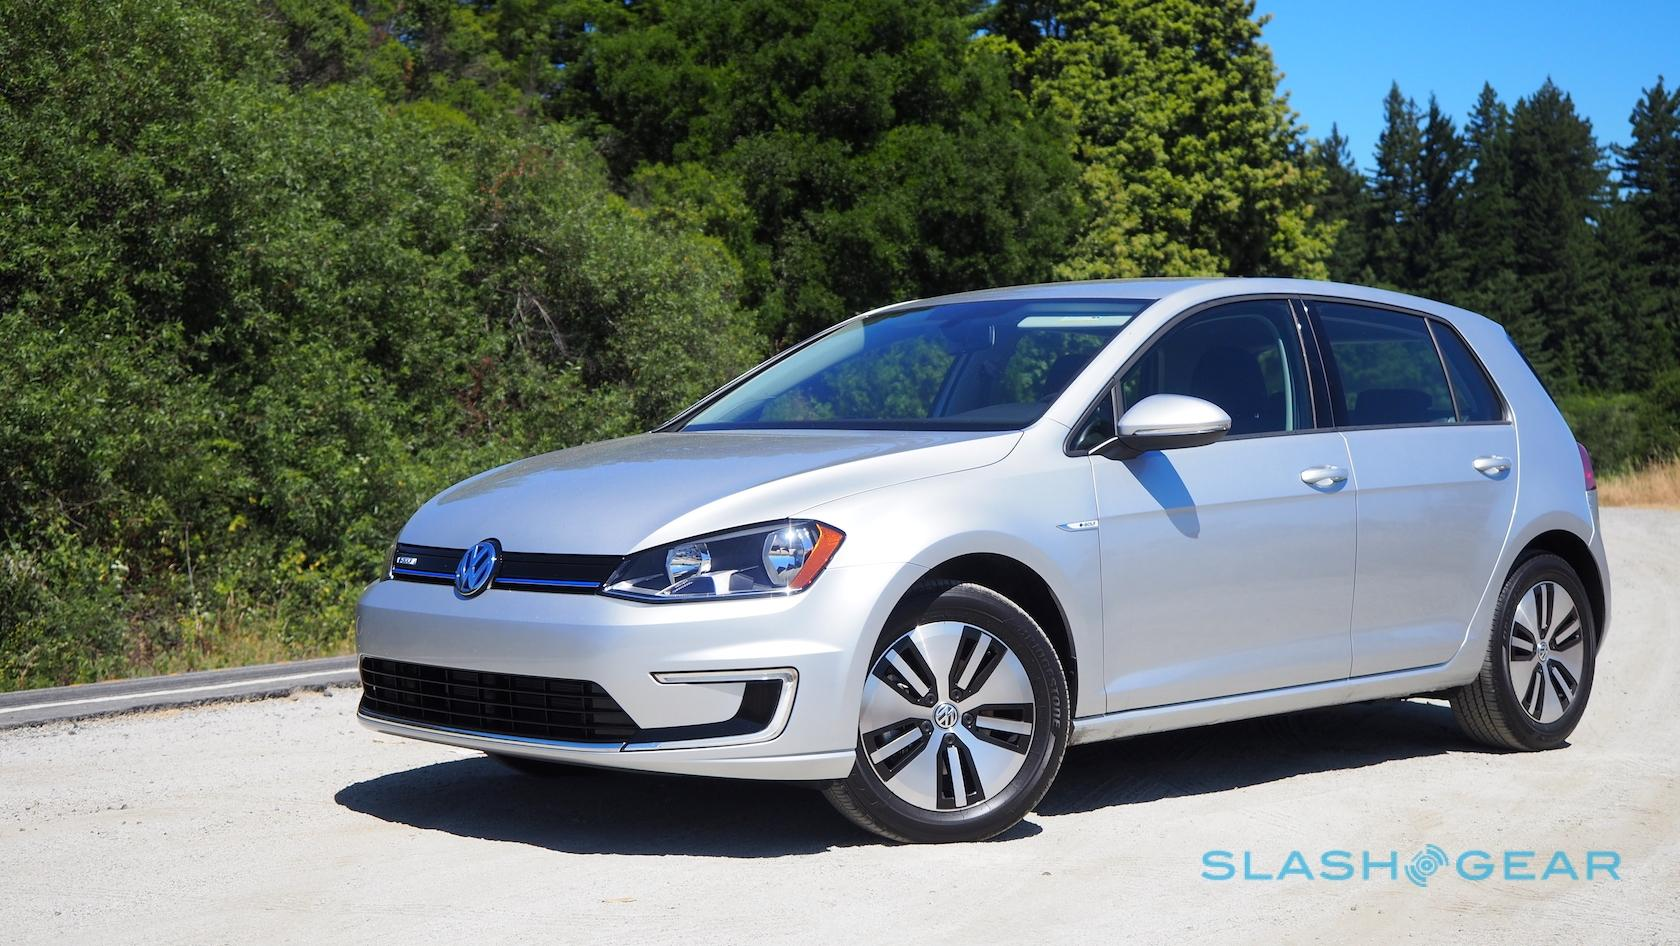 2016 Nissan Leaf vs 2016 Volkswagen e-Golf: Range-Anxiety - SlashGear